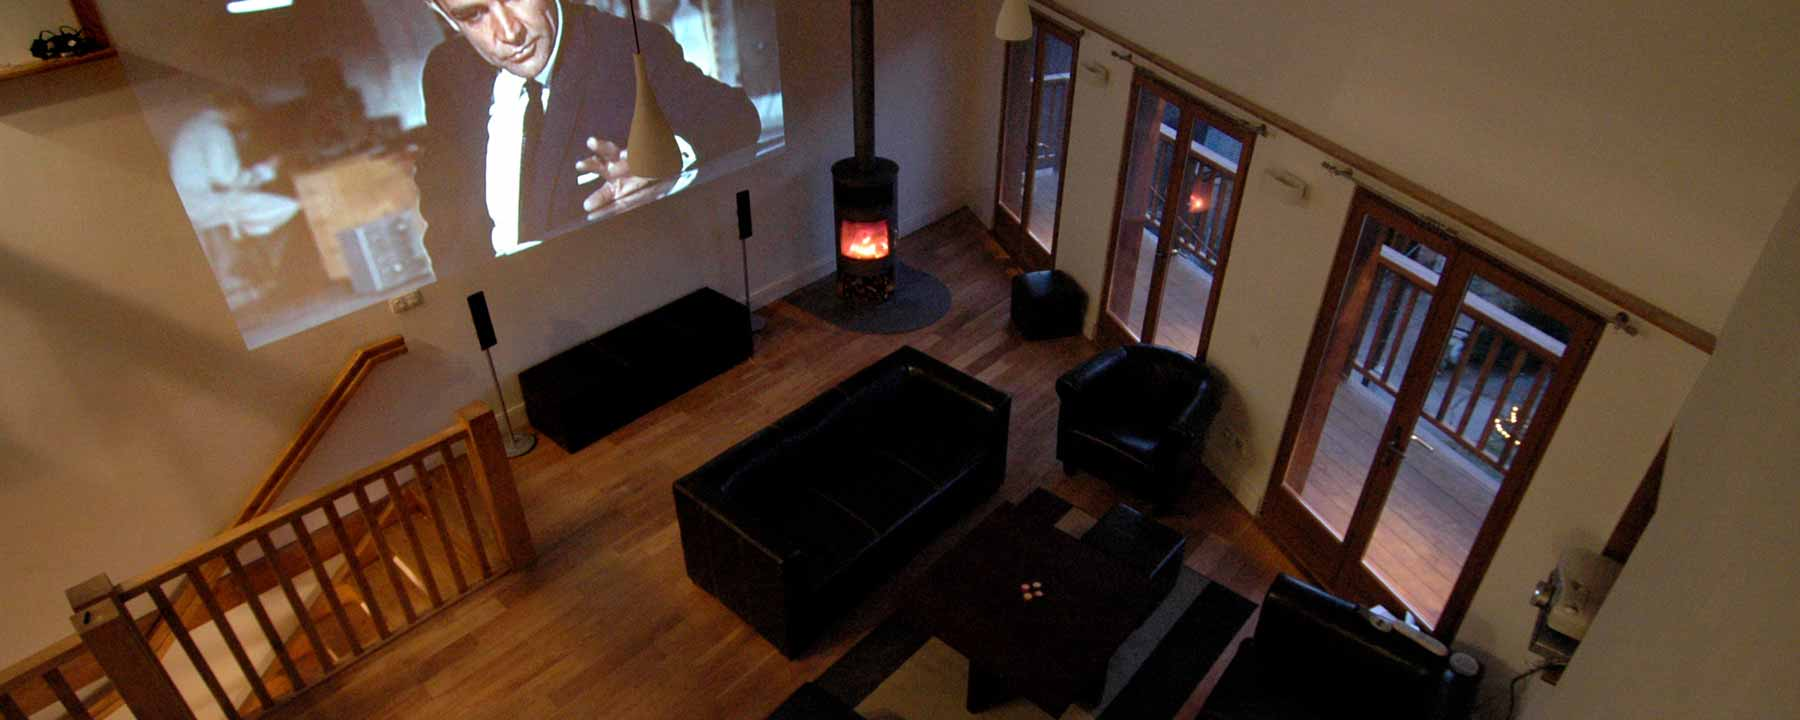 Retire to the lounge for a cinema-like movie experience!